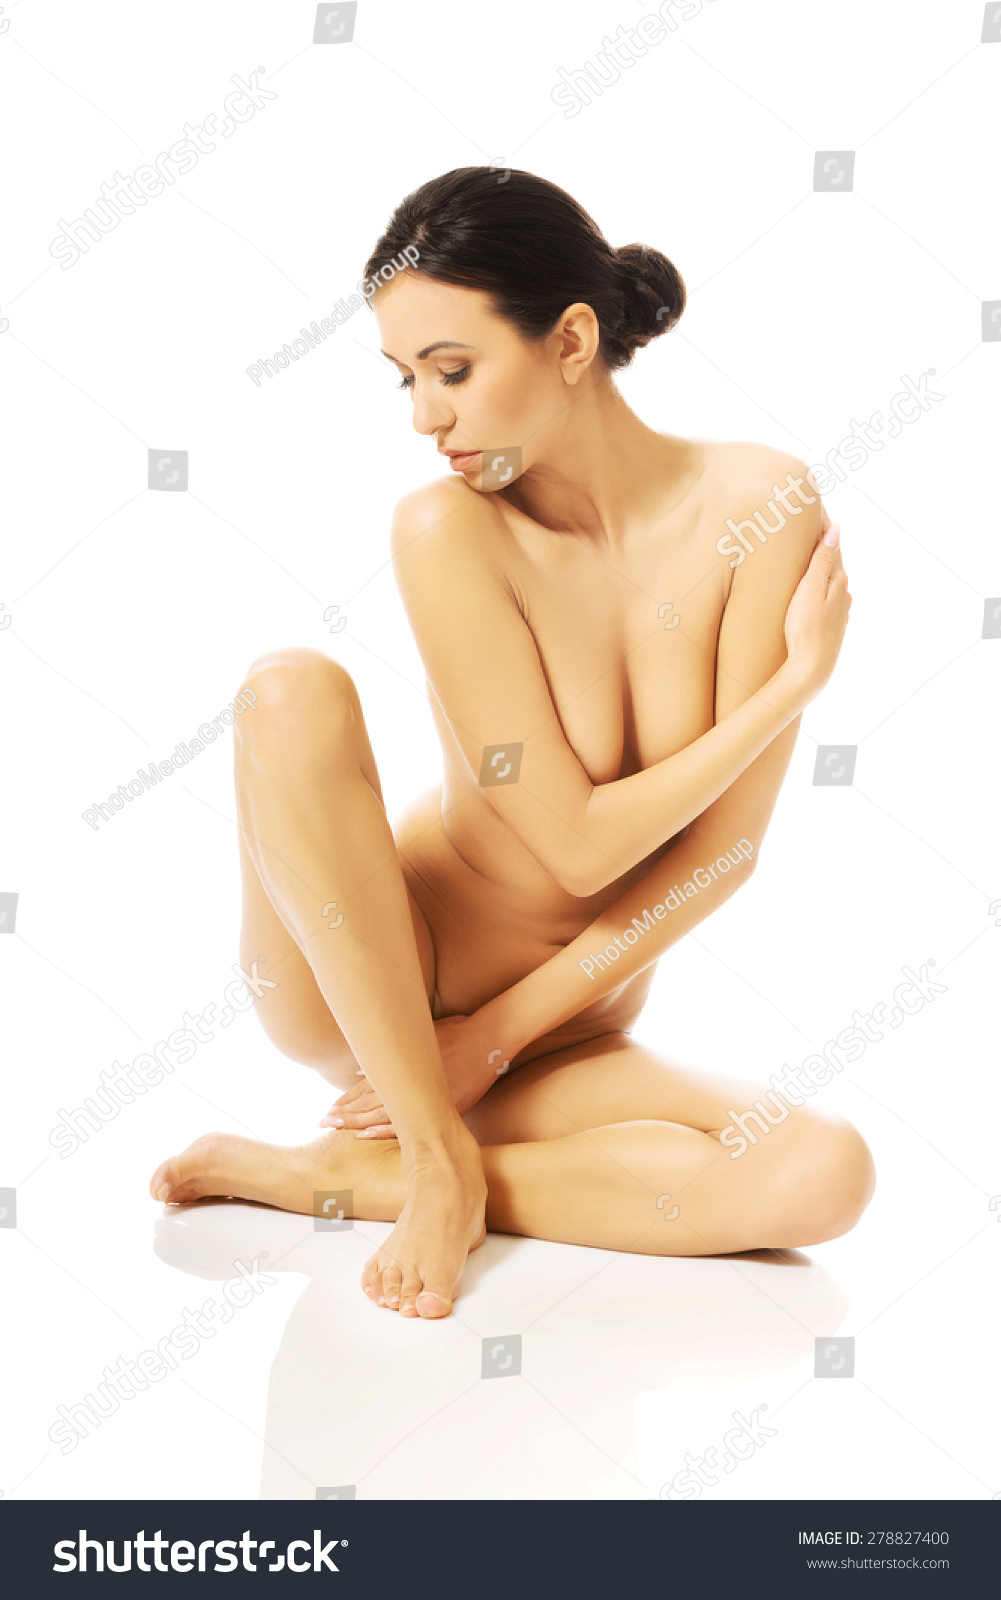 Full length photo of nude woman sitting cross legged and looking down.